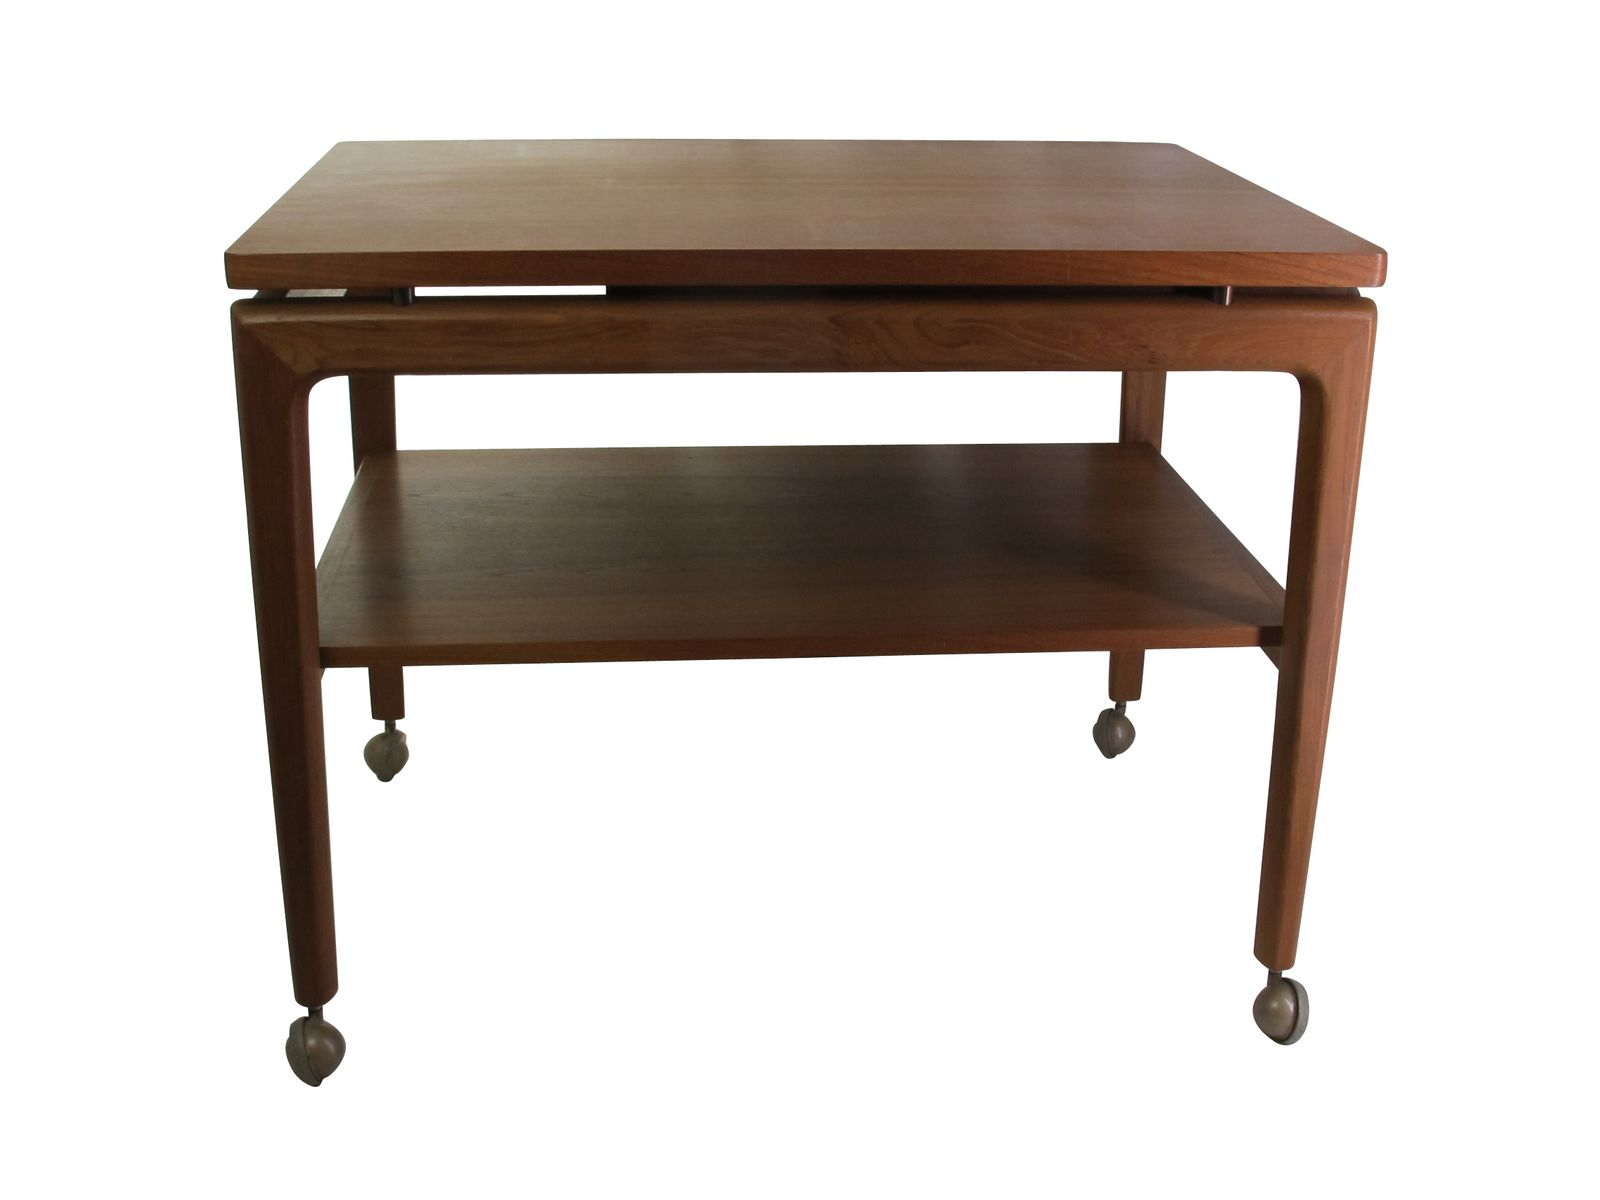 Teak Trolley Or Coffee Table From France Son 1960s For Sale At Pamono